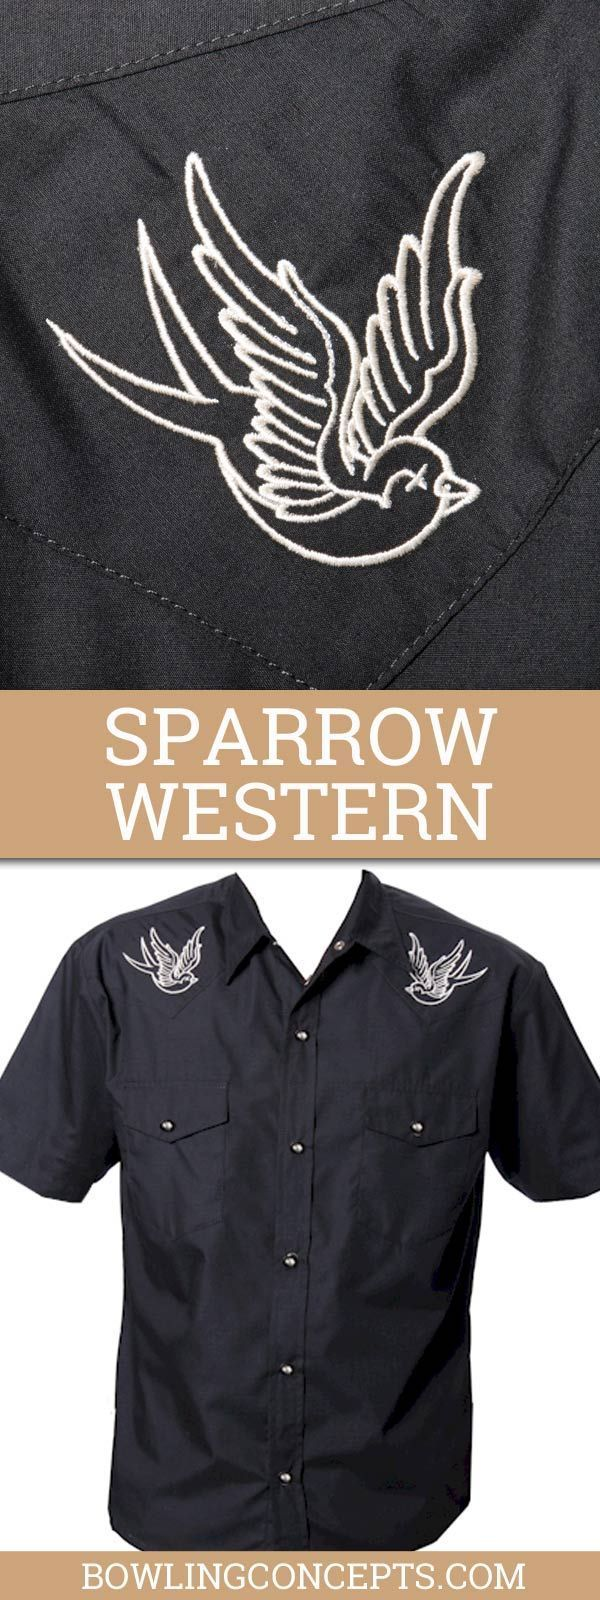 Men's Rockabilly Western Shirt  -- Black & White -- Sparrows are Embroidered on the Front Black Yokes -- 20% Cotton, 80% Polyester -- Variegated Snaps -- One Button Front Pockets